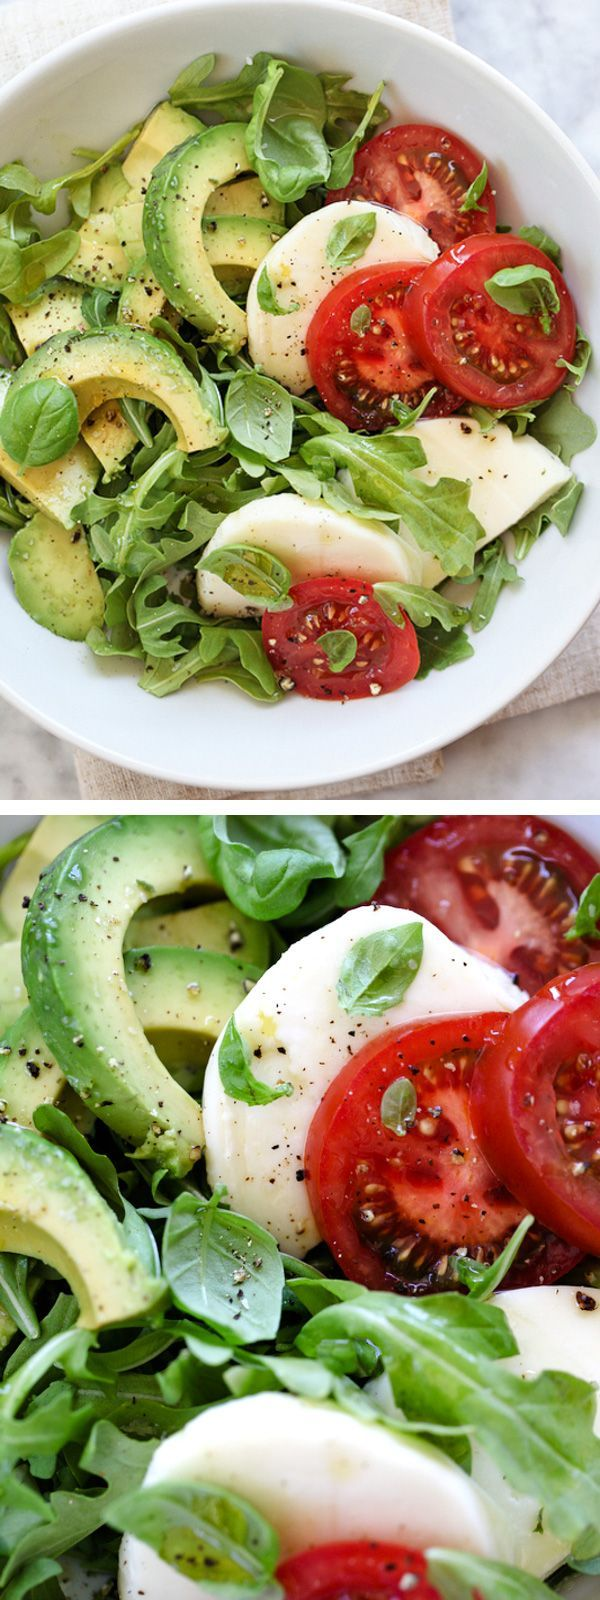 single serving recipe for Avocado Caprese Salad on www.foodiecrush.com #avocado #caprese #mozzarella